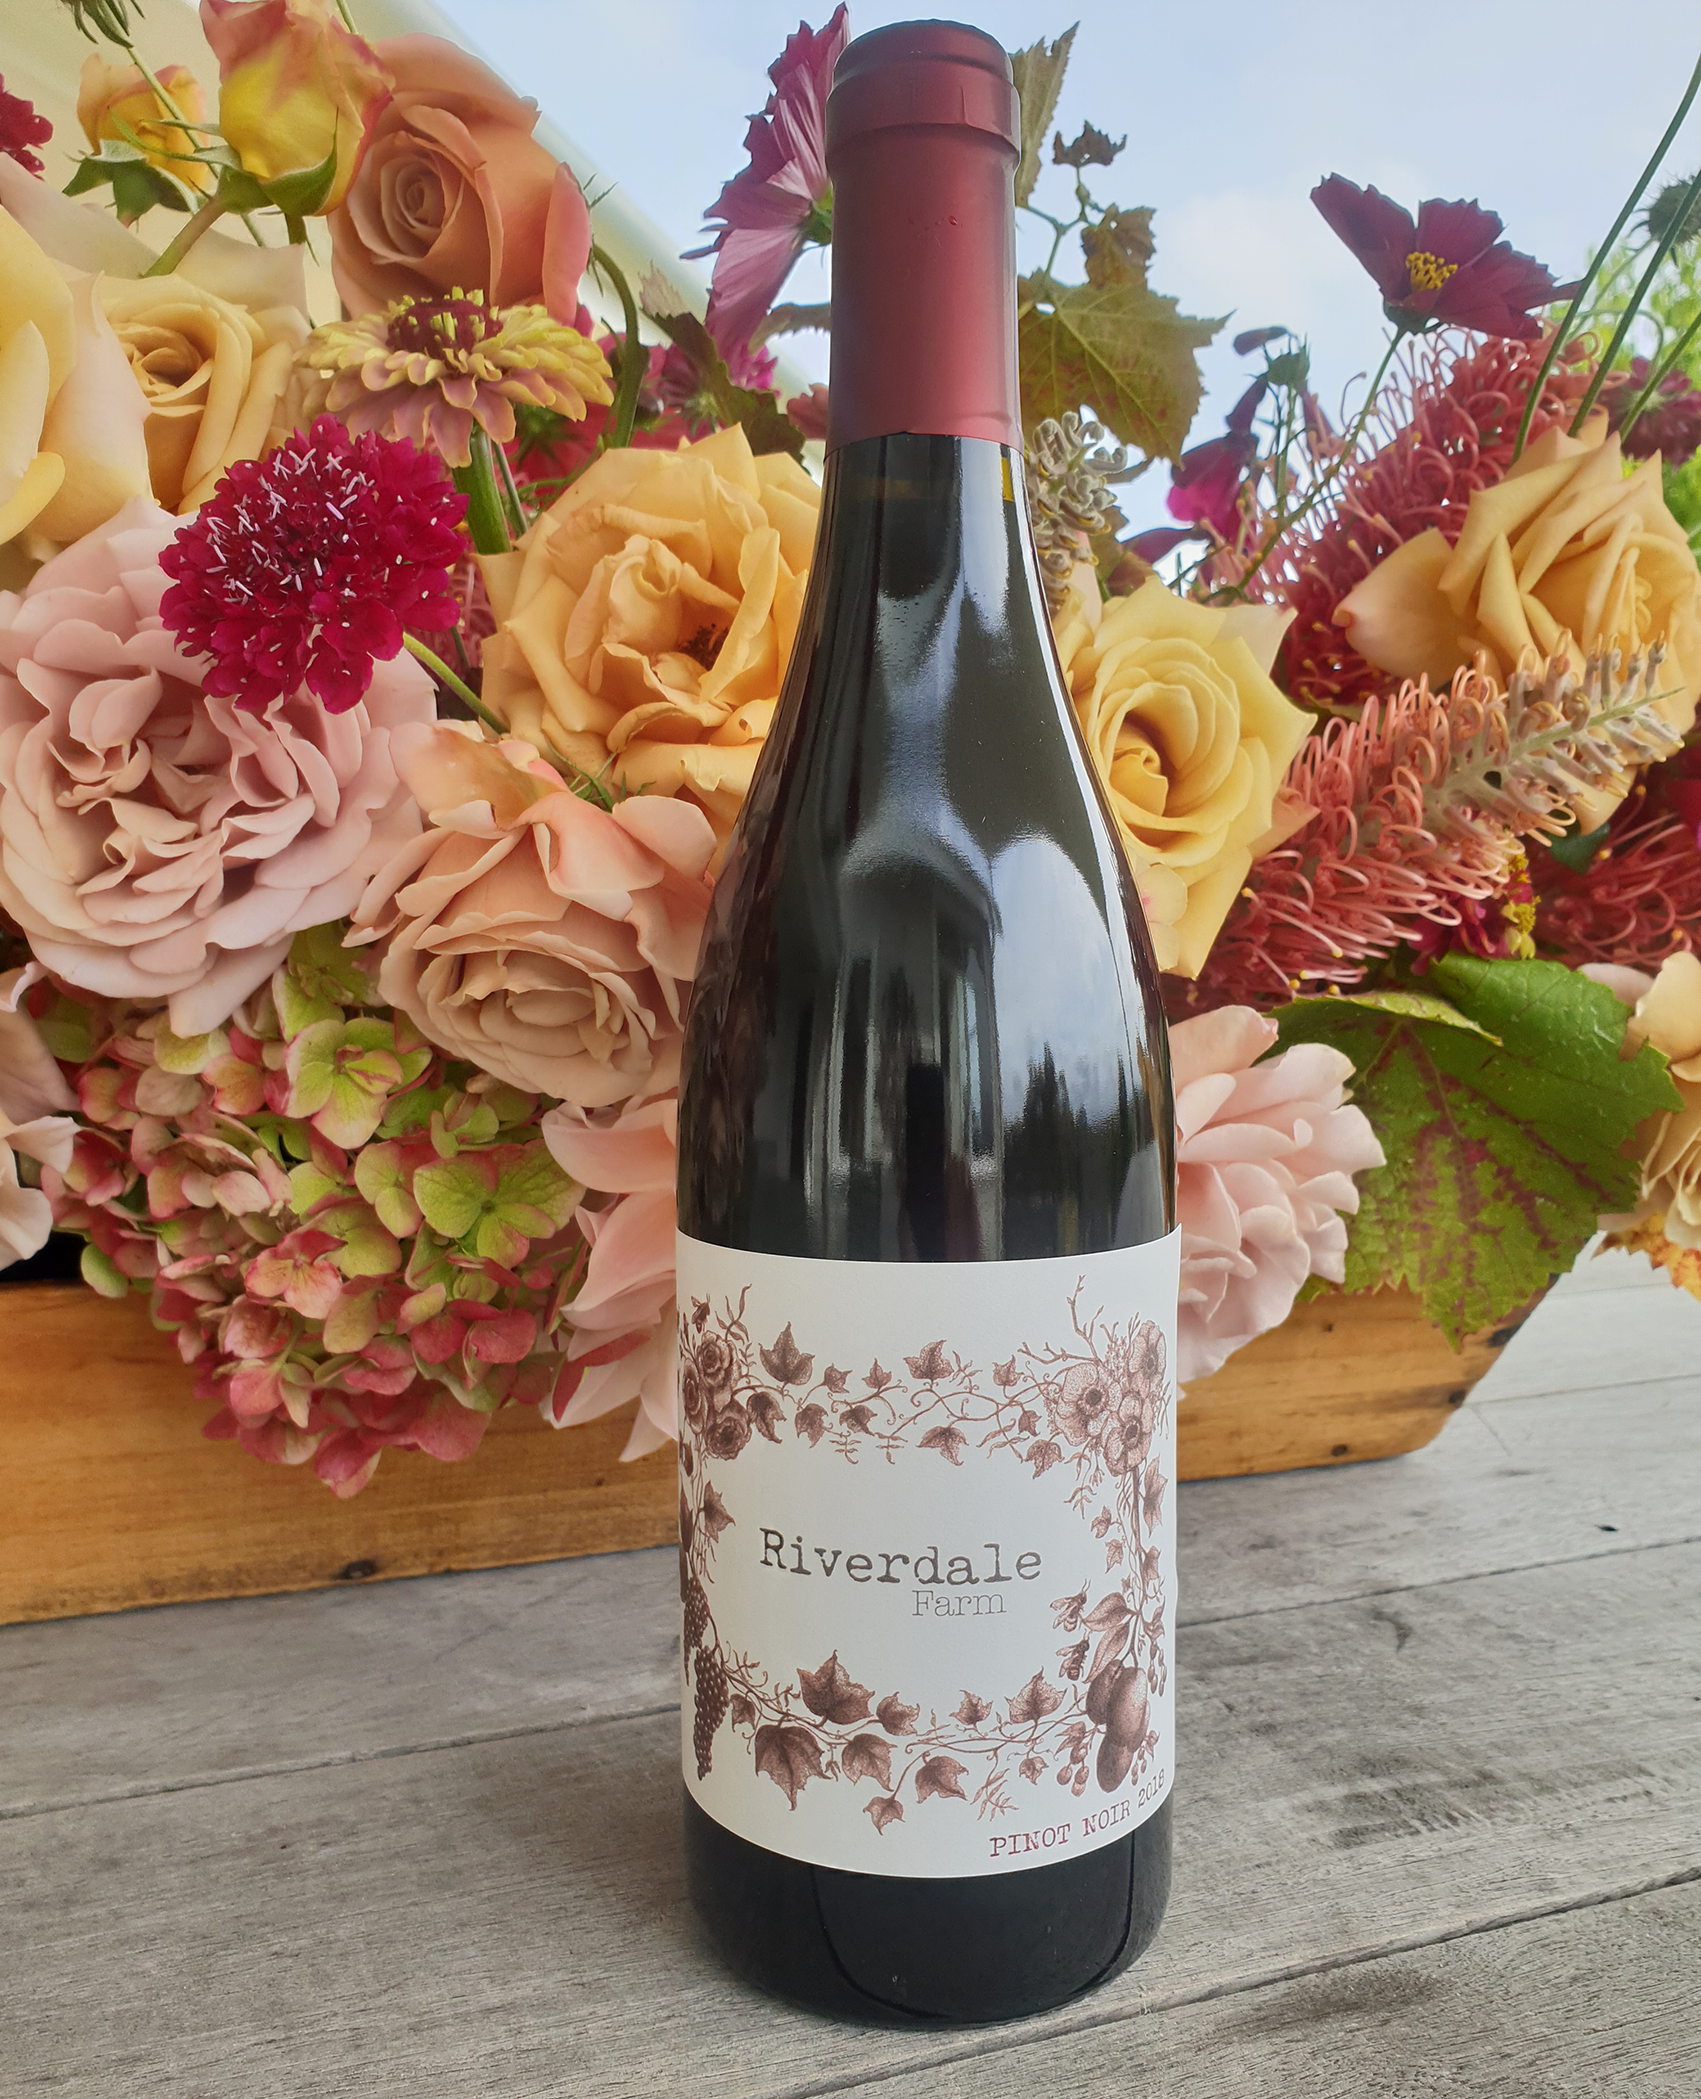 Autumnal flowers and Riverdale Farm pinot noir